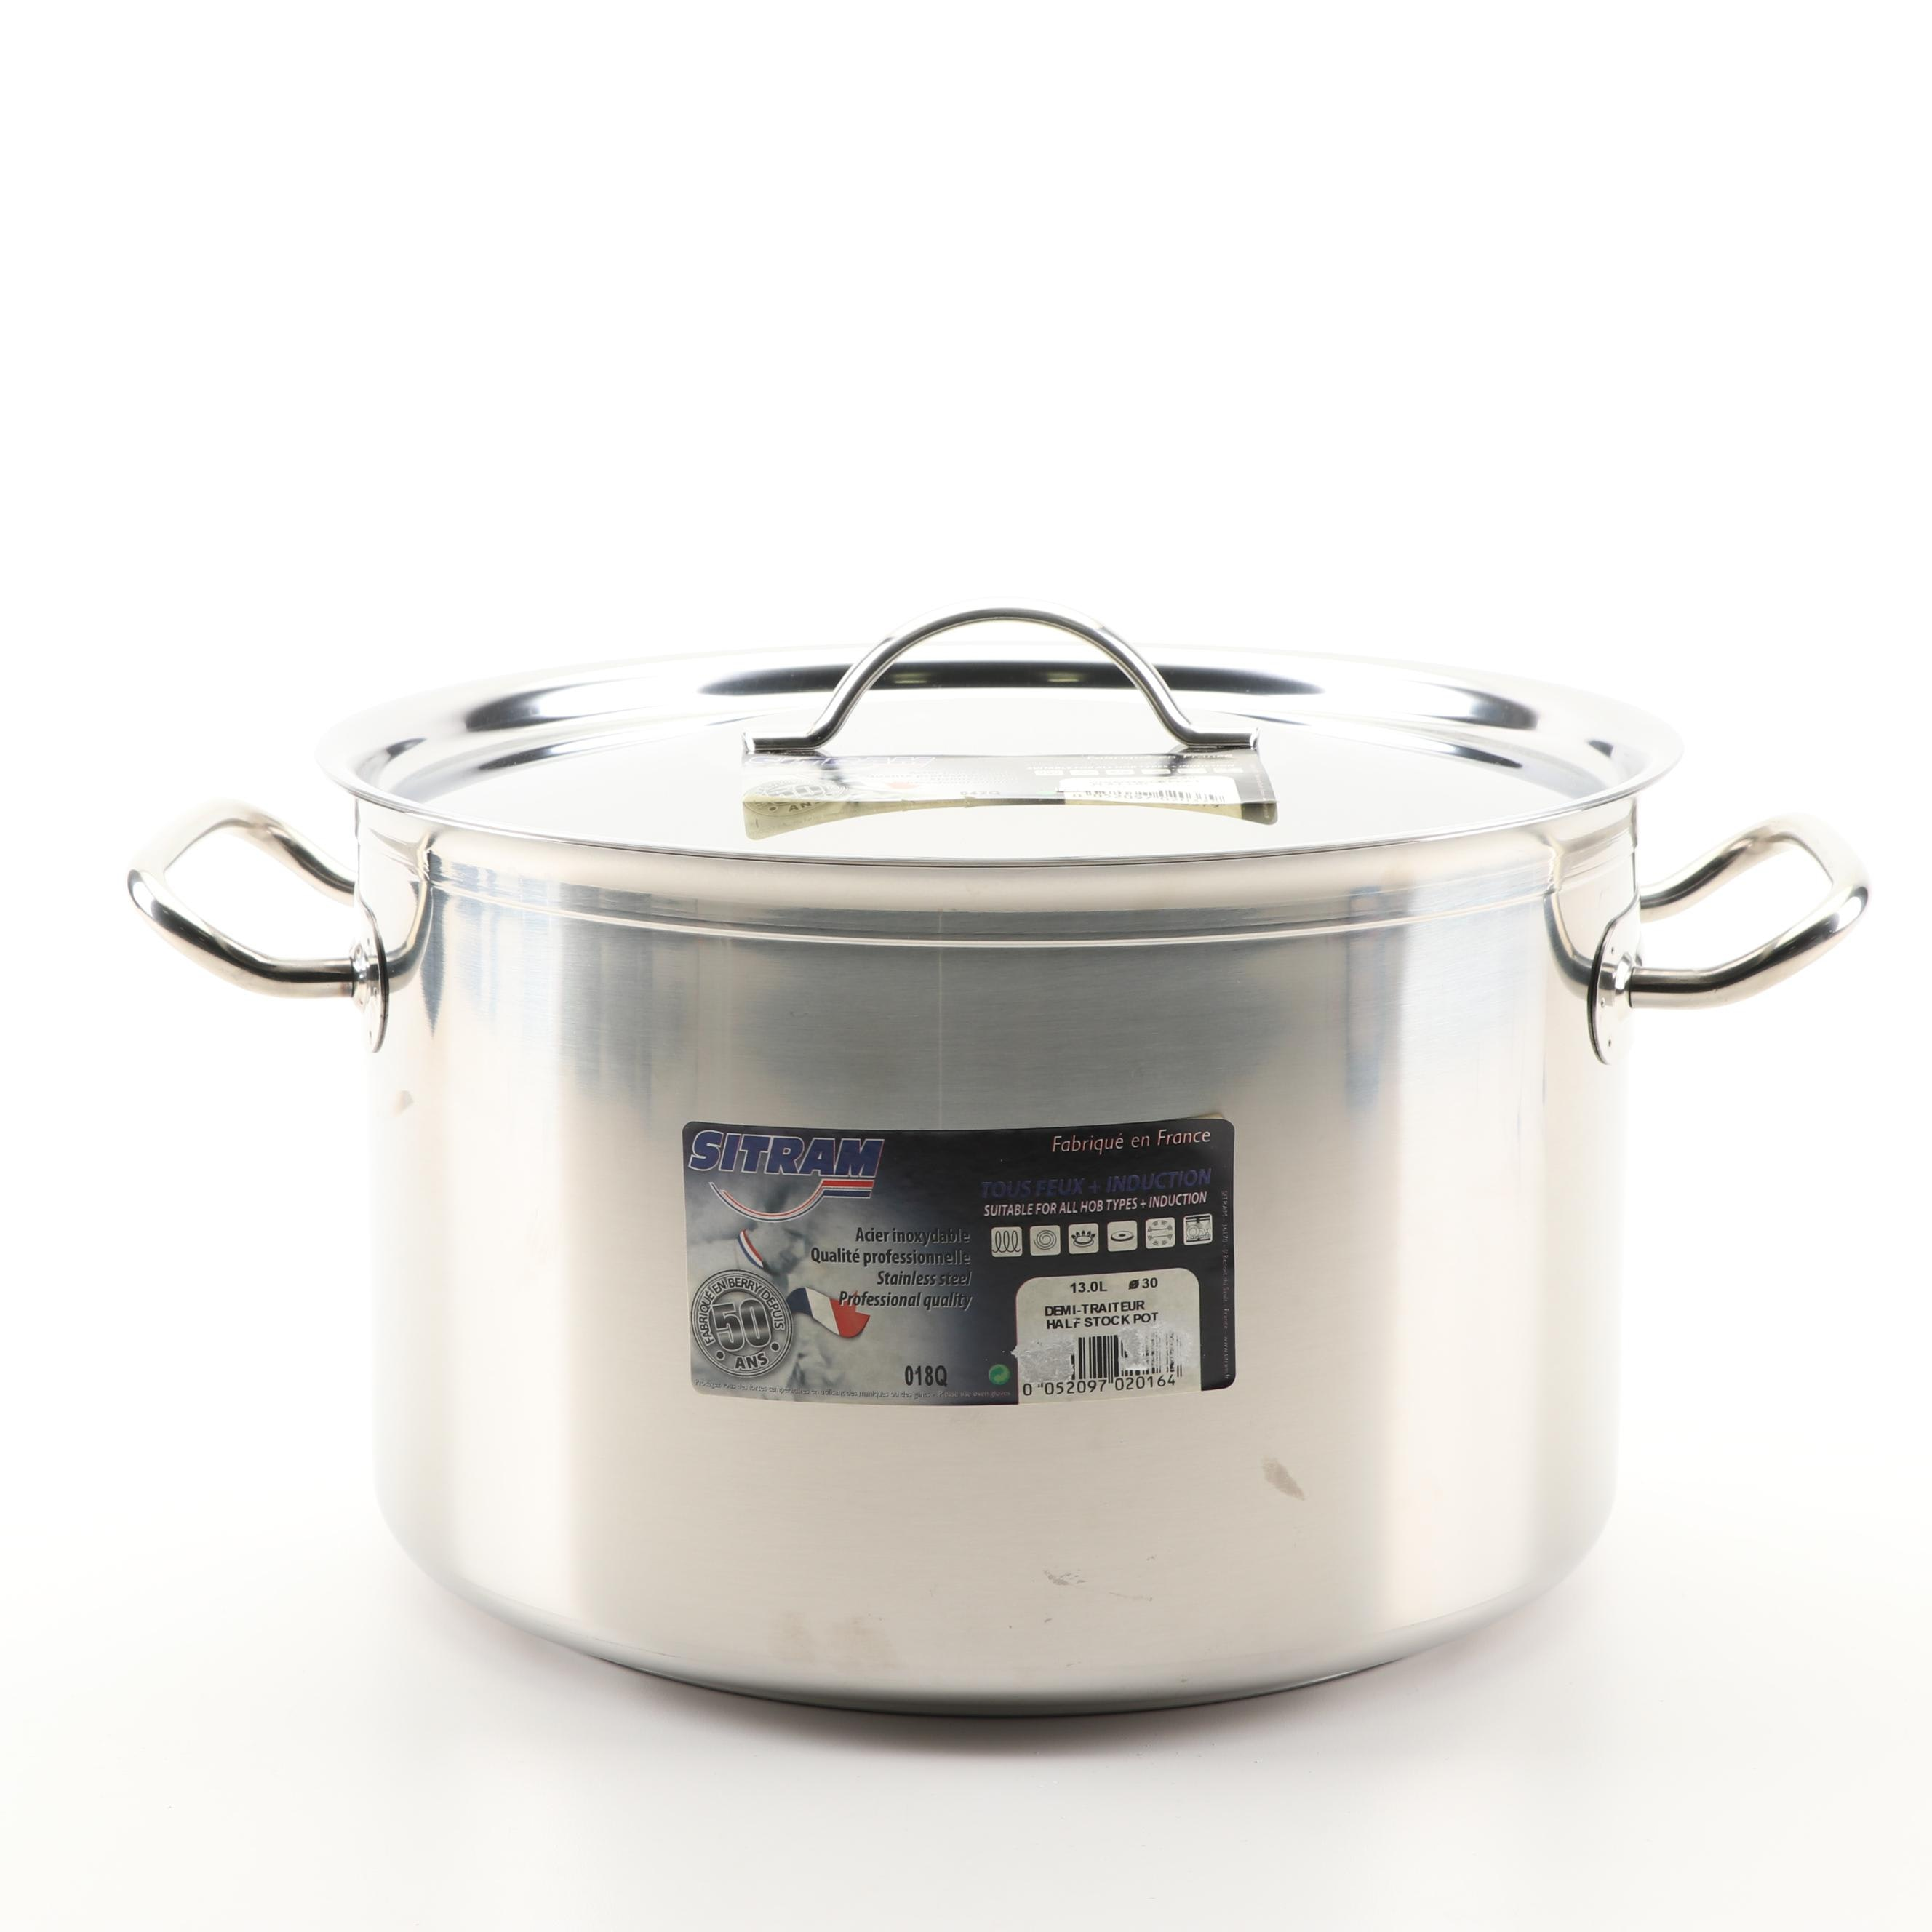 Sitram Stainless Steel Half Stockpot with Flat Lid